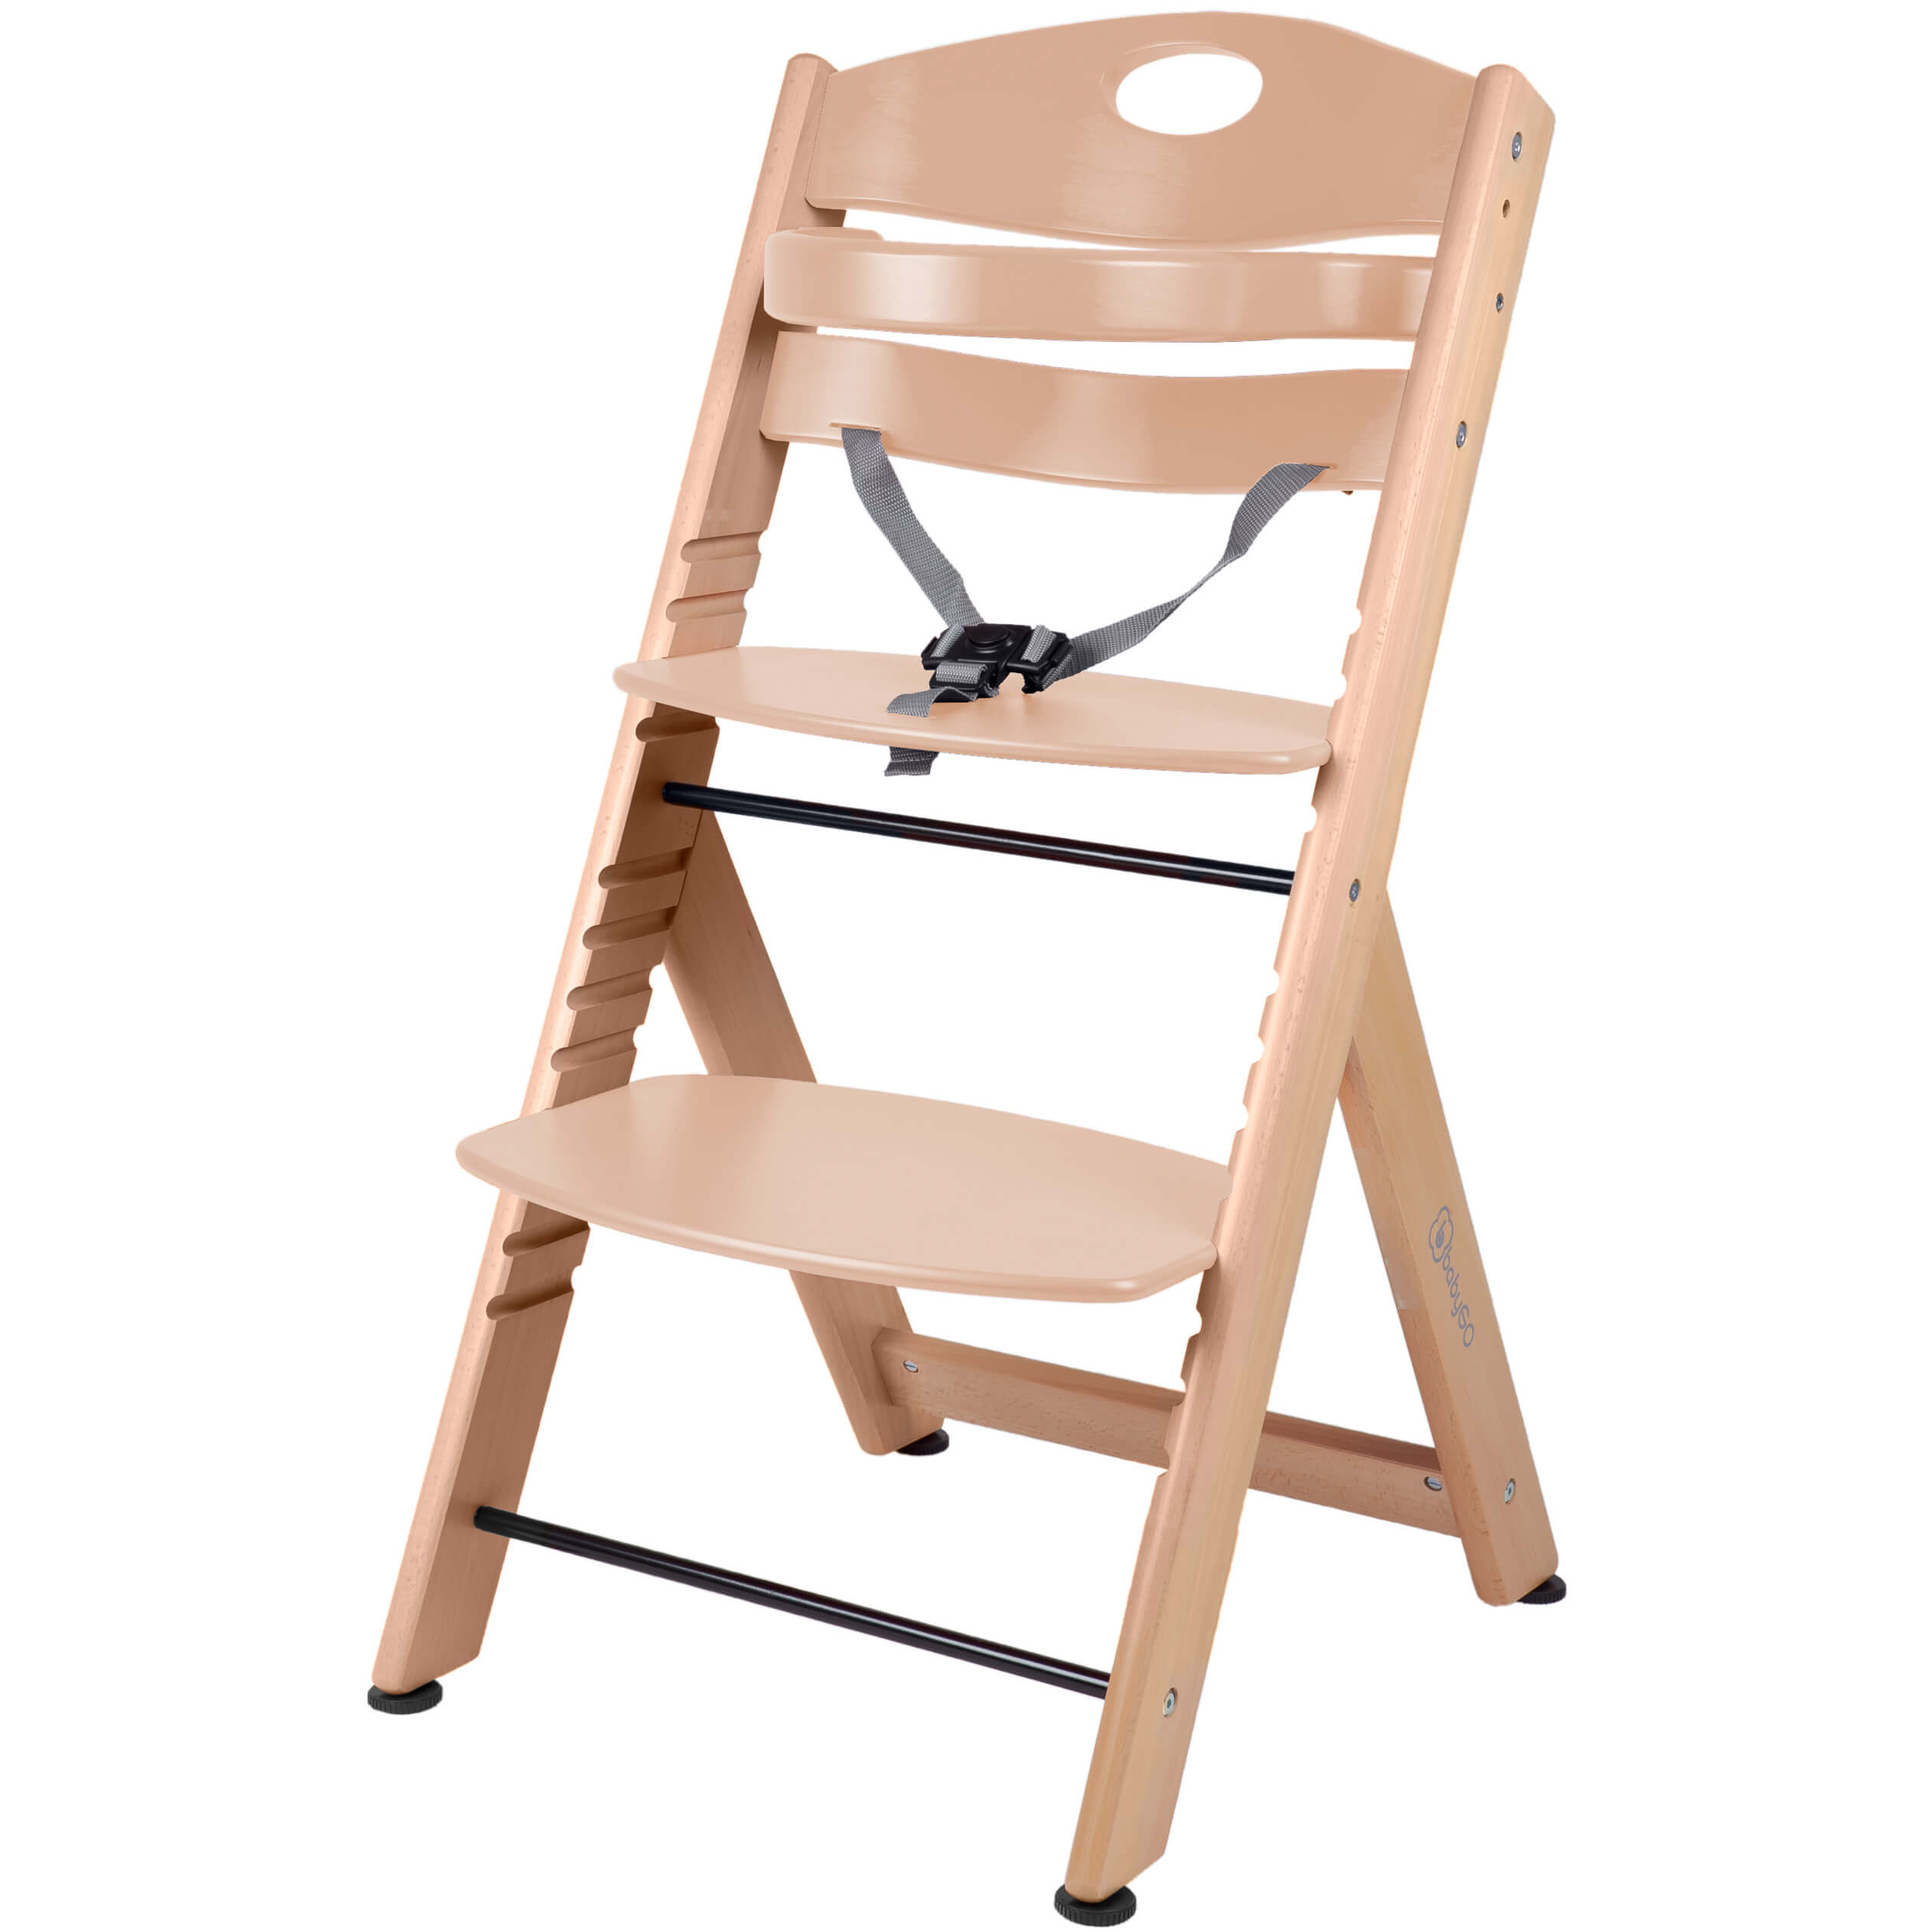 Babygo High Chair Family Xl Made Of Solid Wood Nature